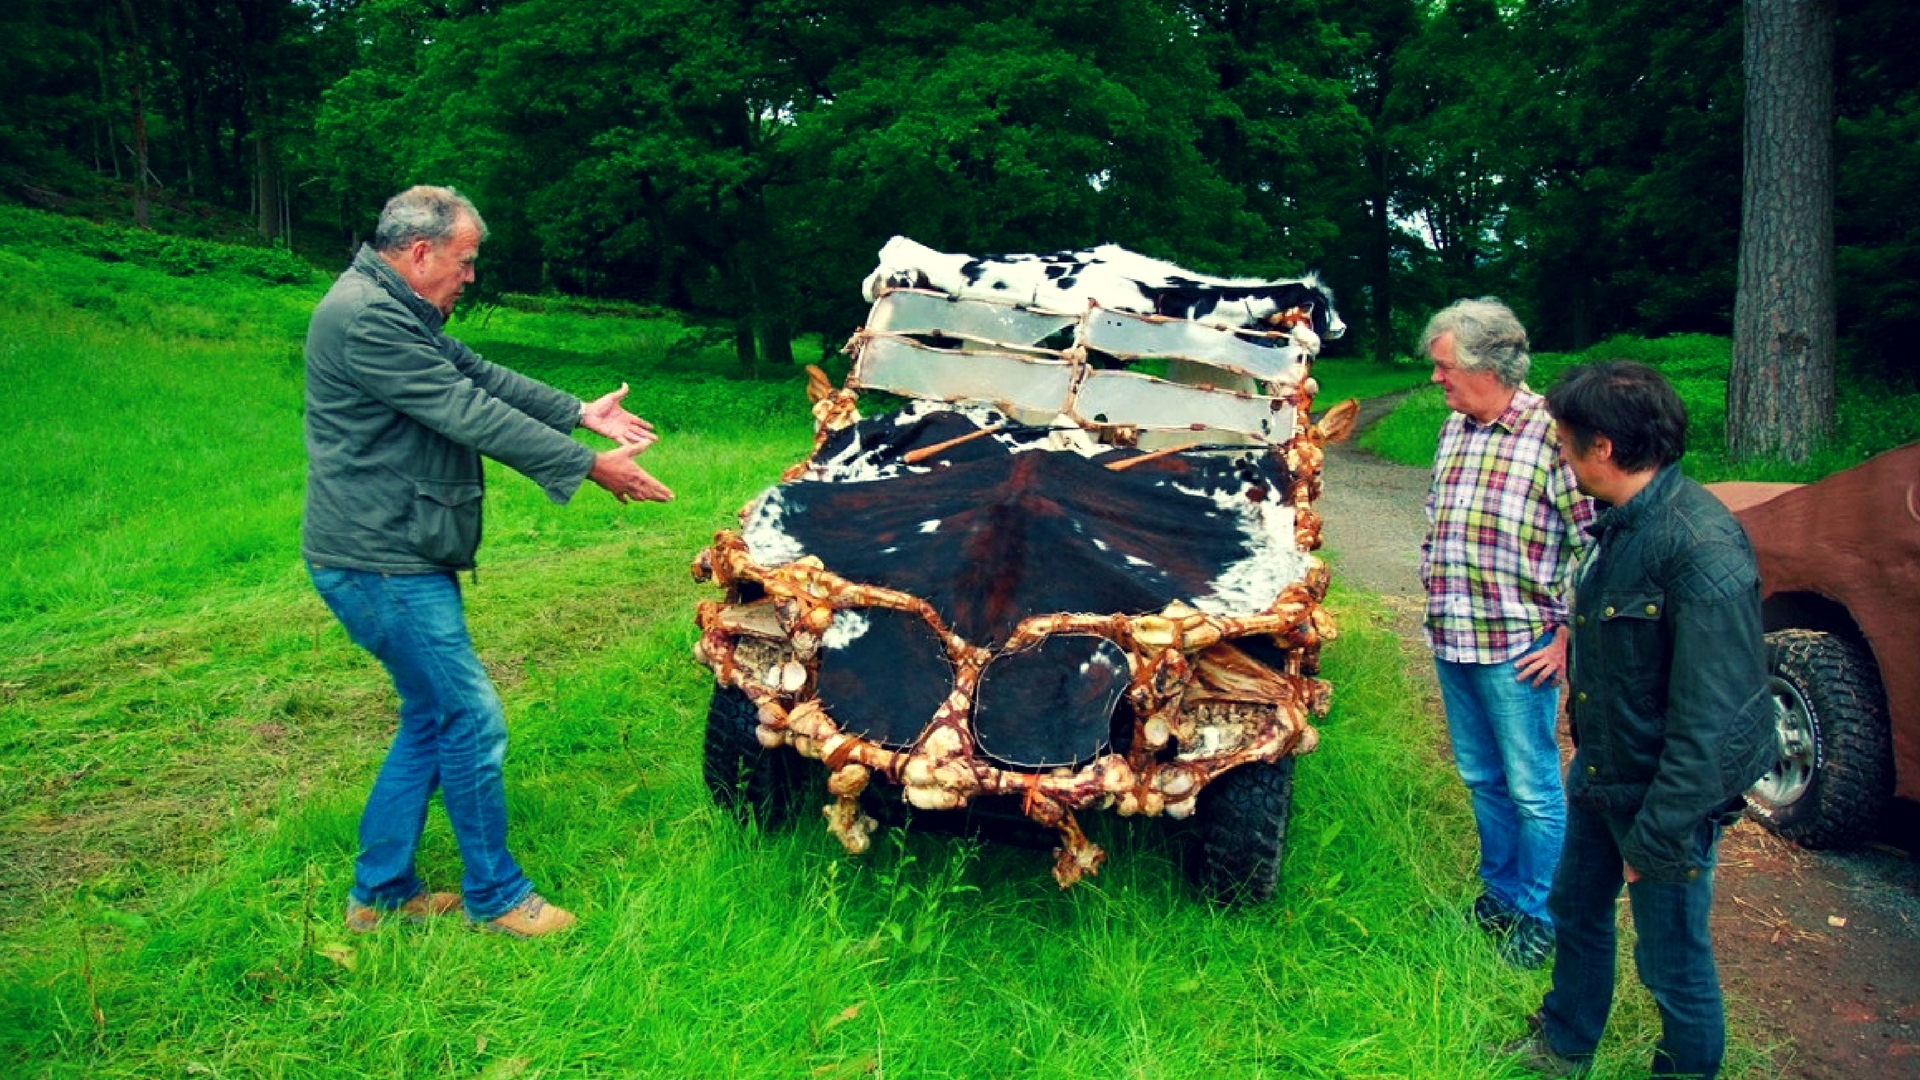 Grand Tour Season 1 Episode 4 Car Made out of Cow and Animal Bones